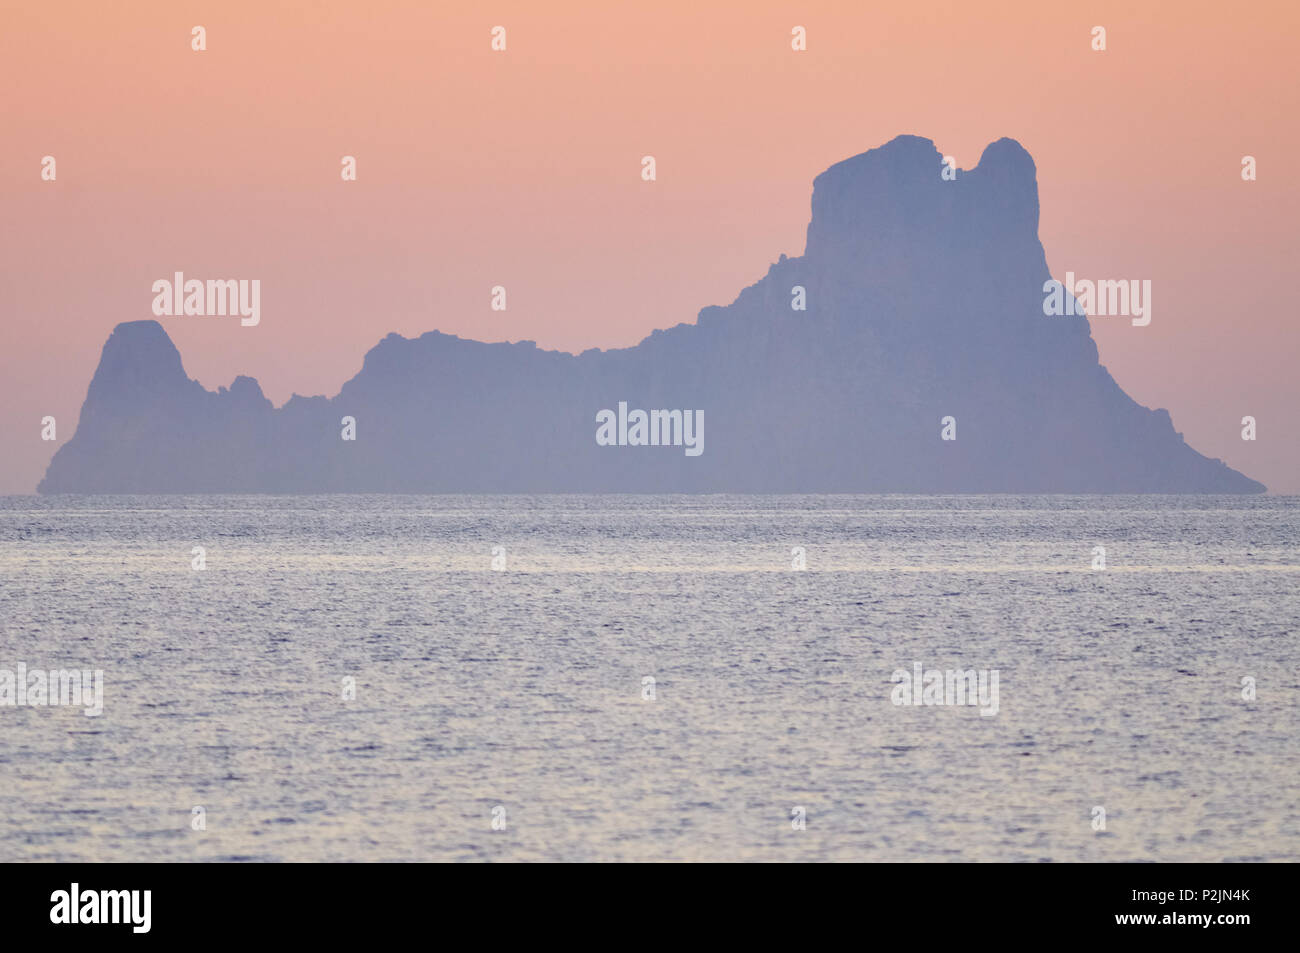 Panoramic view at sunset of Es Vedrá islet silhouette against red sky from Formentera (Pityusic Islands, Balearic Islands, Spain) - Stock Image